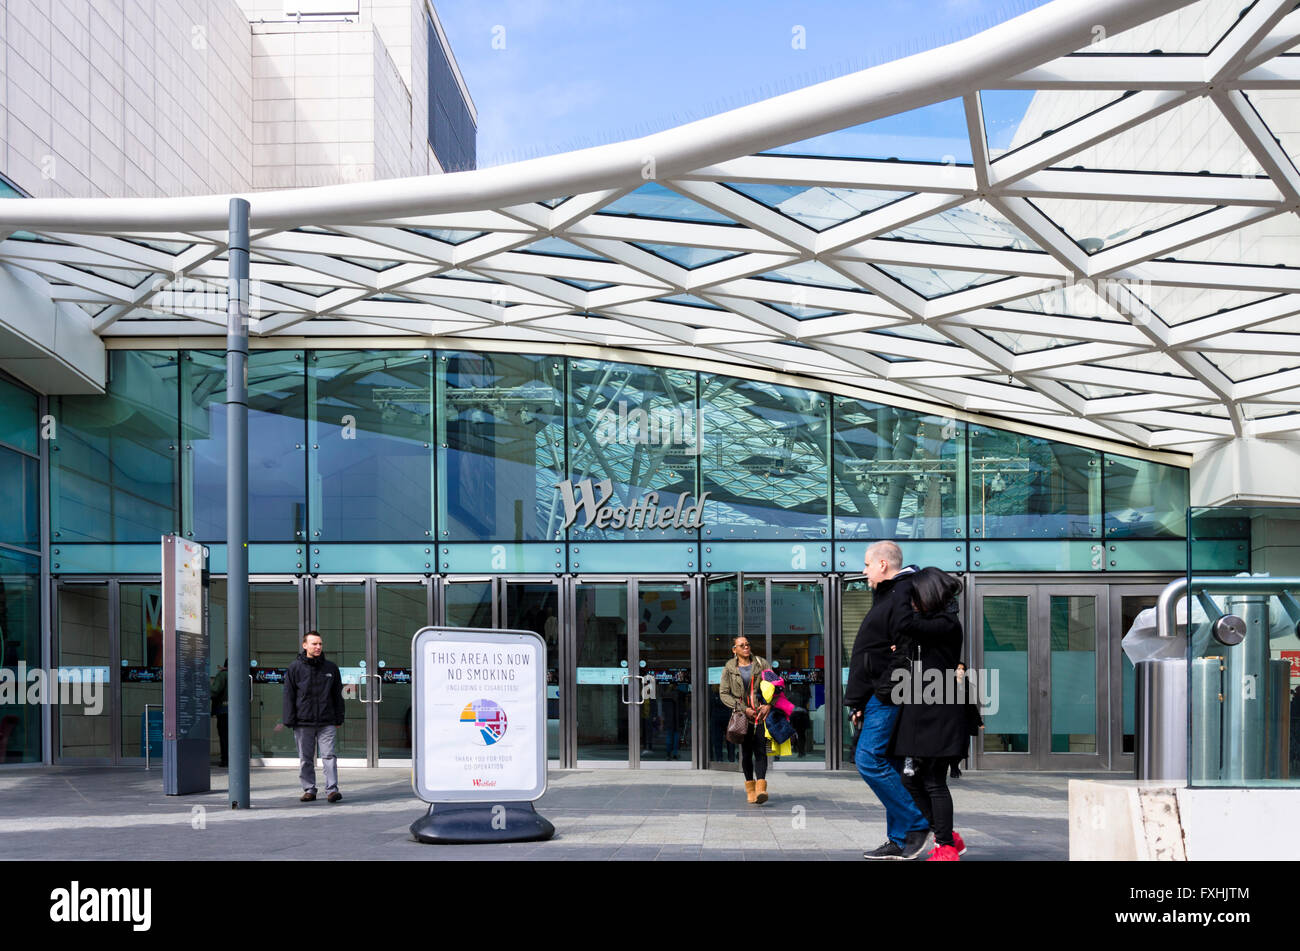 One of the entrances to the Westfield Shopping Centre in Shepherds Bush, London. - Stock Image